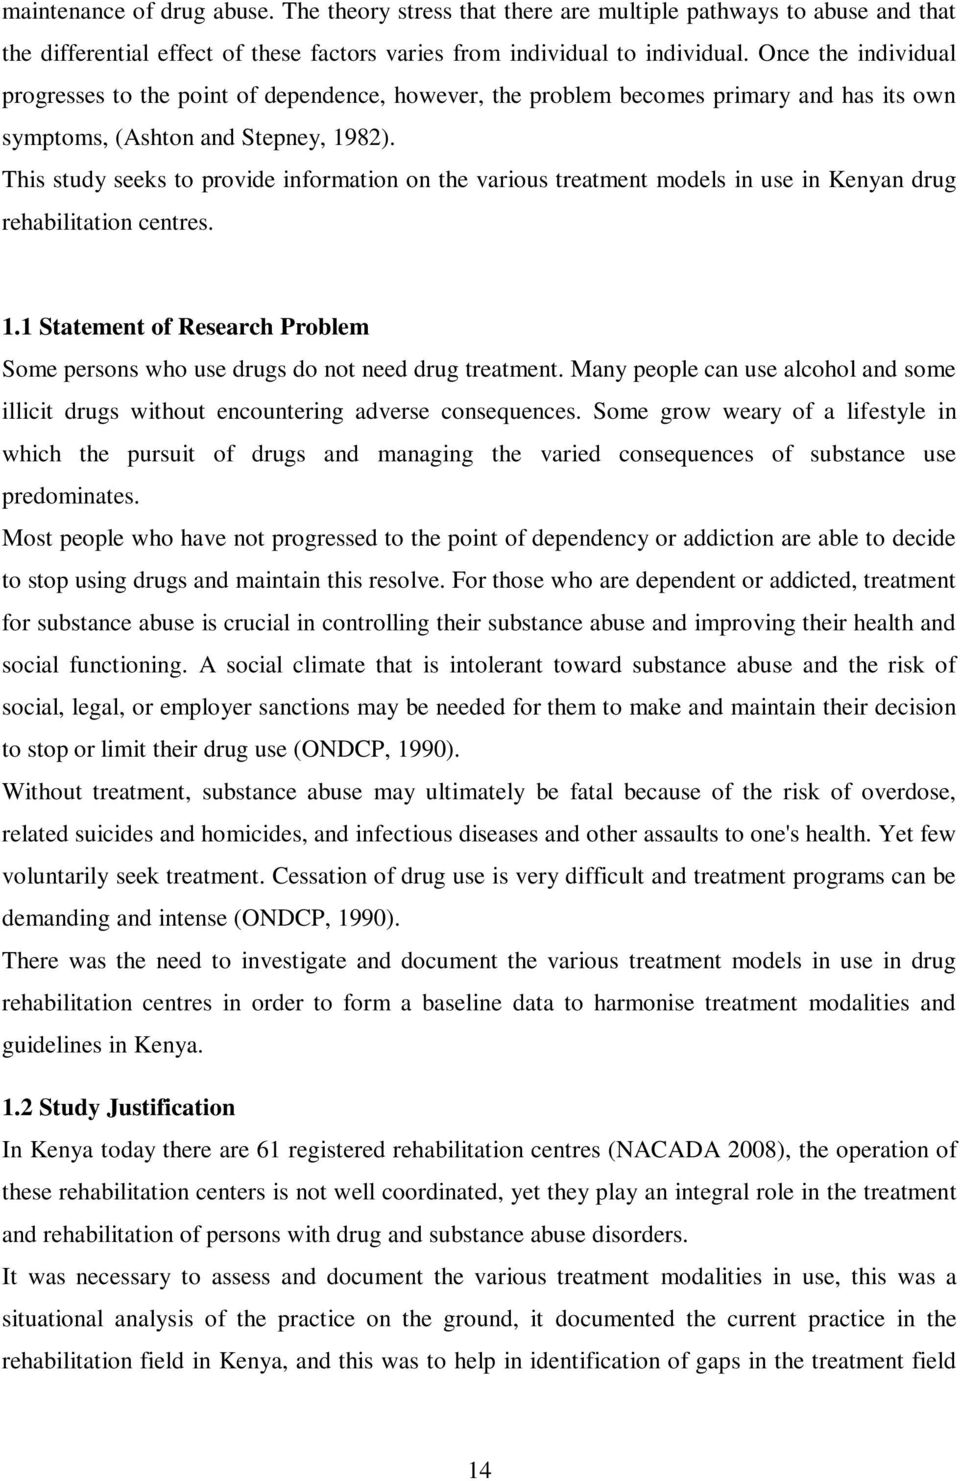 This study seeks to provide information on the various treatment models in use in Kenyan drug rehabilitation centres. 1.